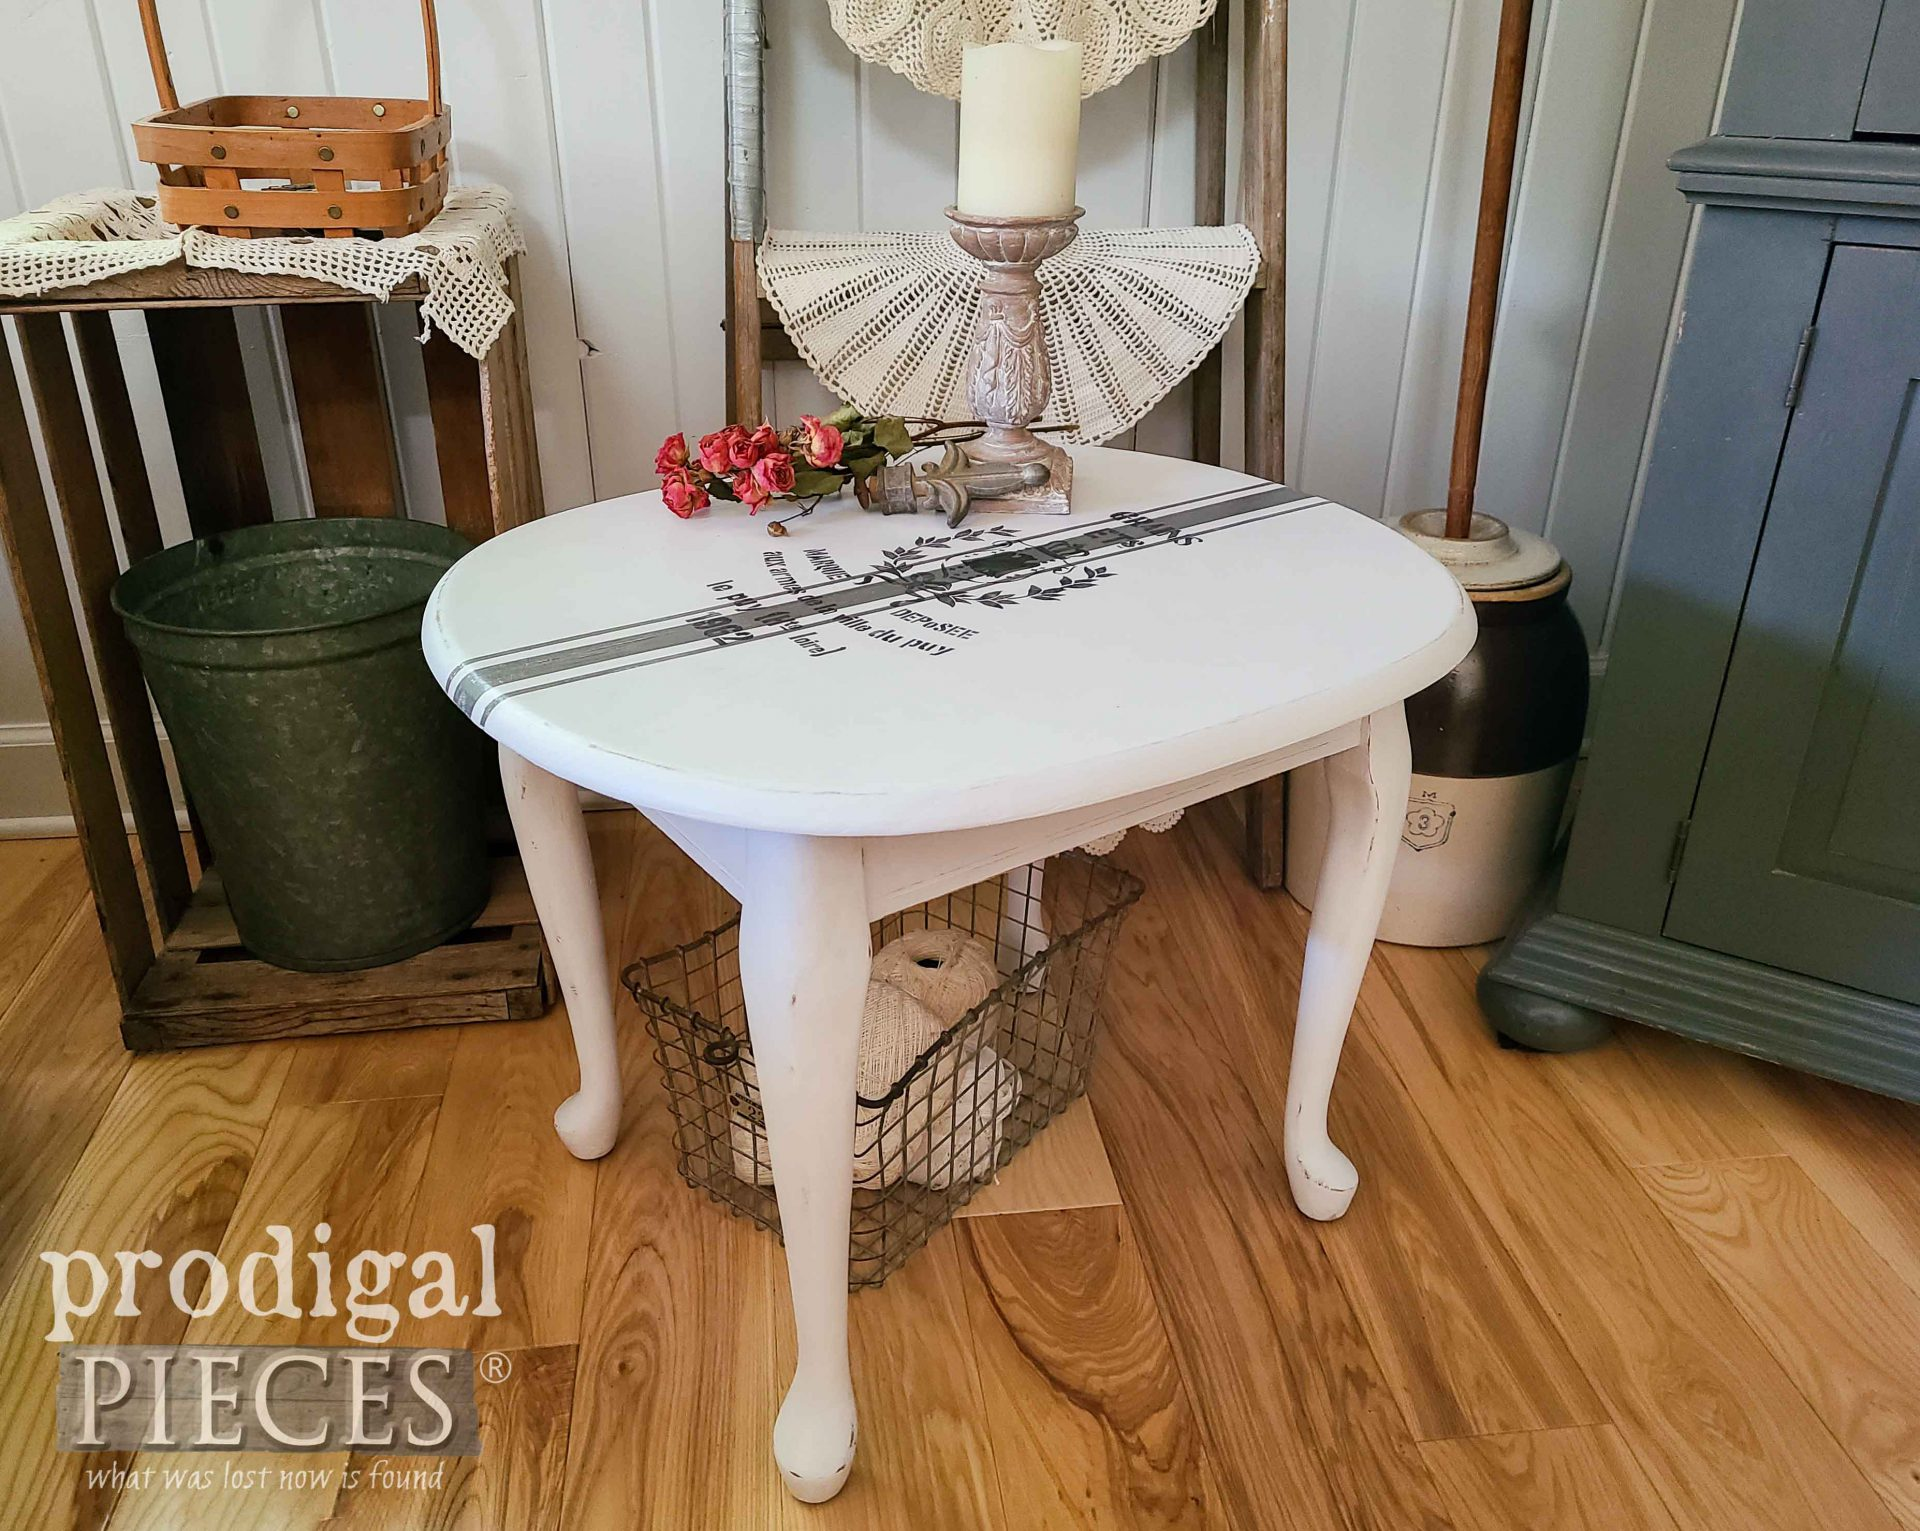 Vintage Painted Side Table in French Farmhouse Grain Sack Style by Larissa of Prodigal Pieces | prodigalpieces.com #prodigalpieces #furniture #home #diy #homedecor #vintage